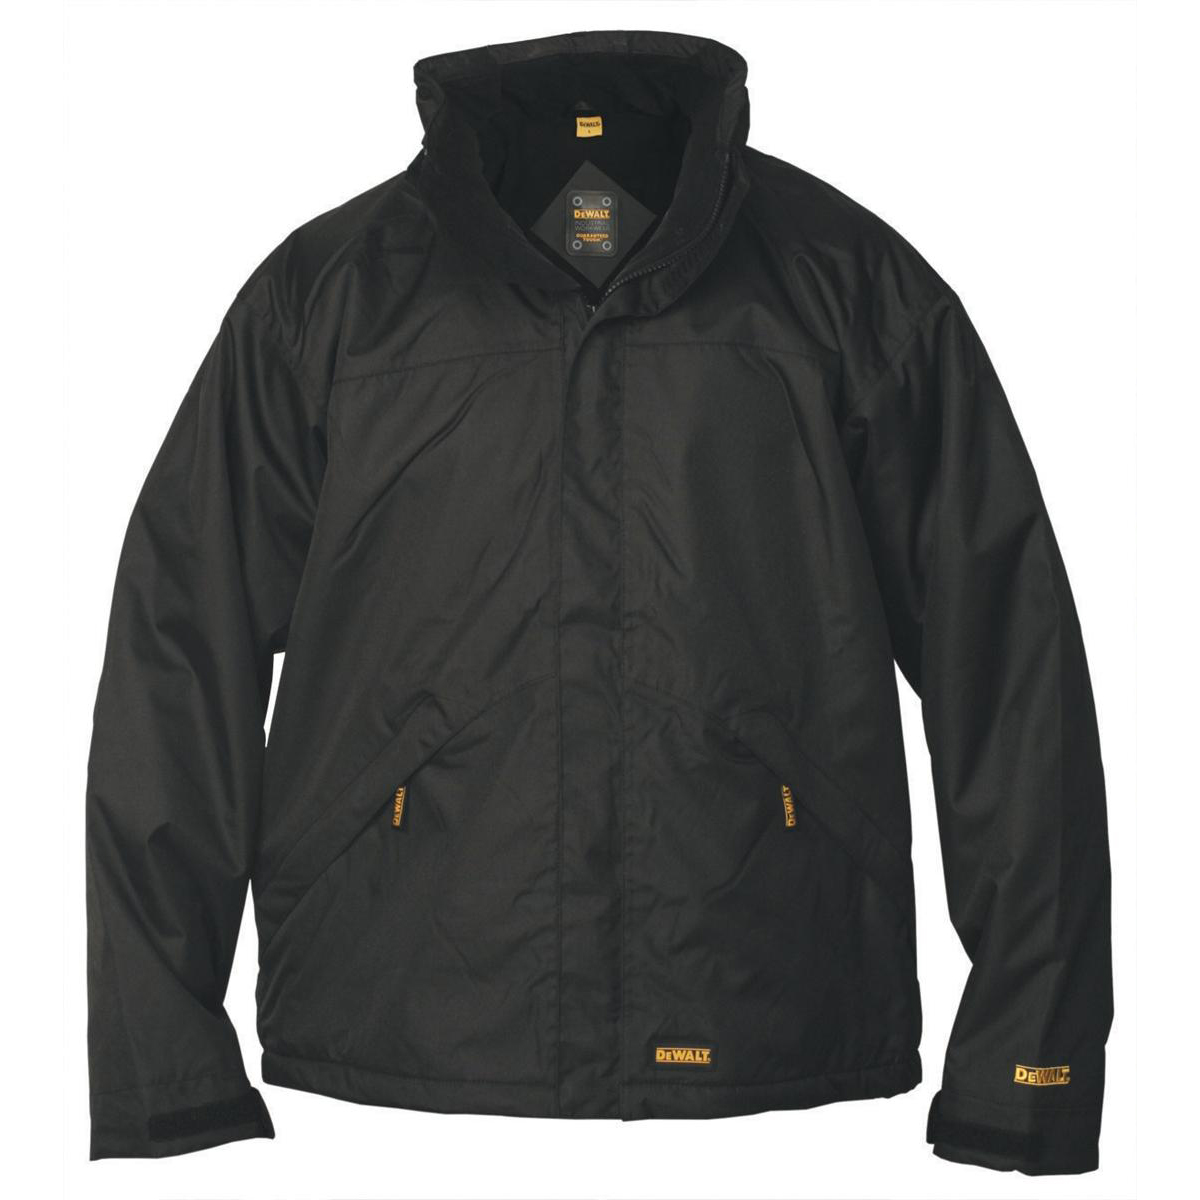 Image for Dewalt Waterproof Jacket Microfleece Lined Internal Phone and Document Pockets X-Large Ref Site jacket XL